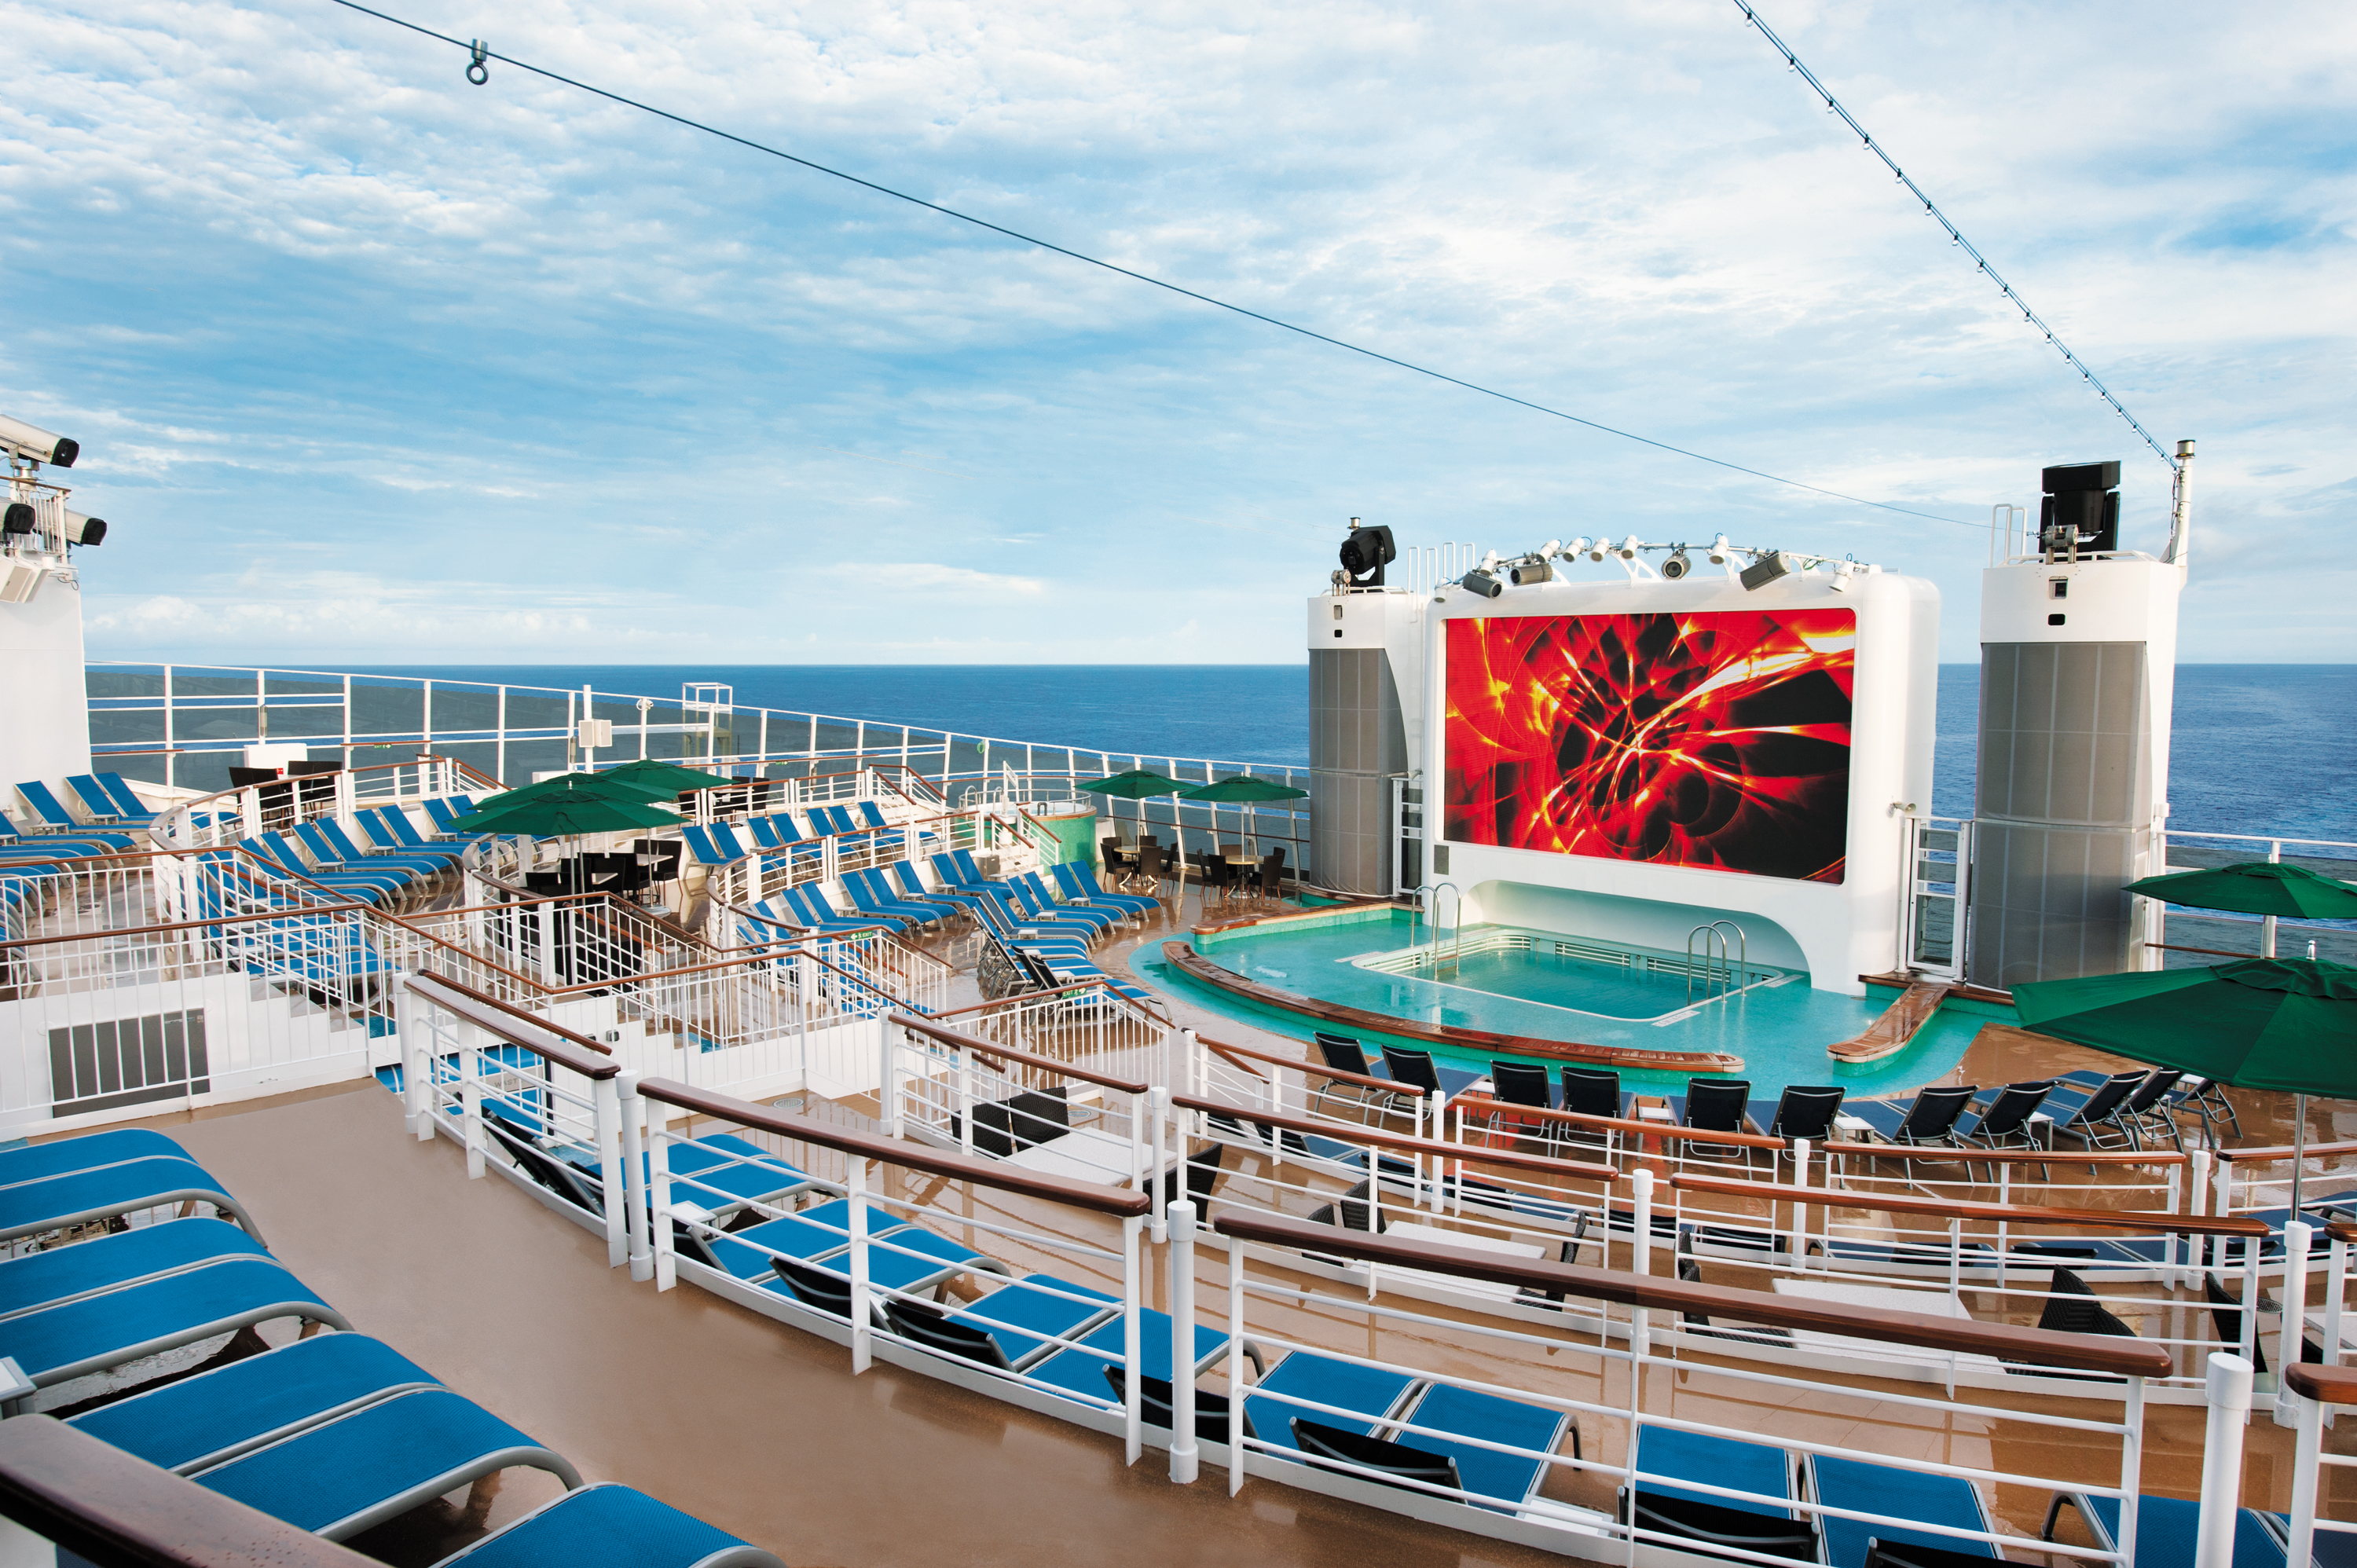 Of The Worlds Largest Cruise Ships Now Calling Port Canaveral - Cruises from port canaveral